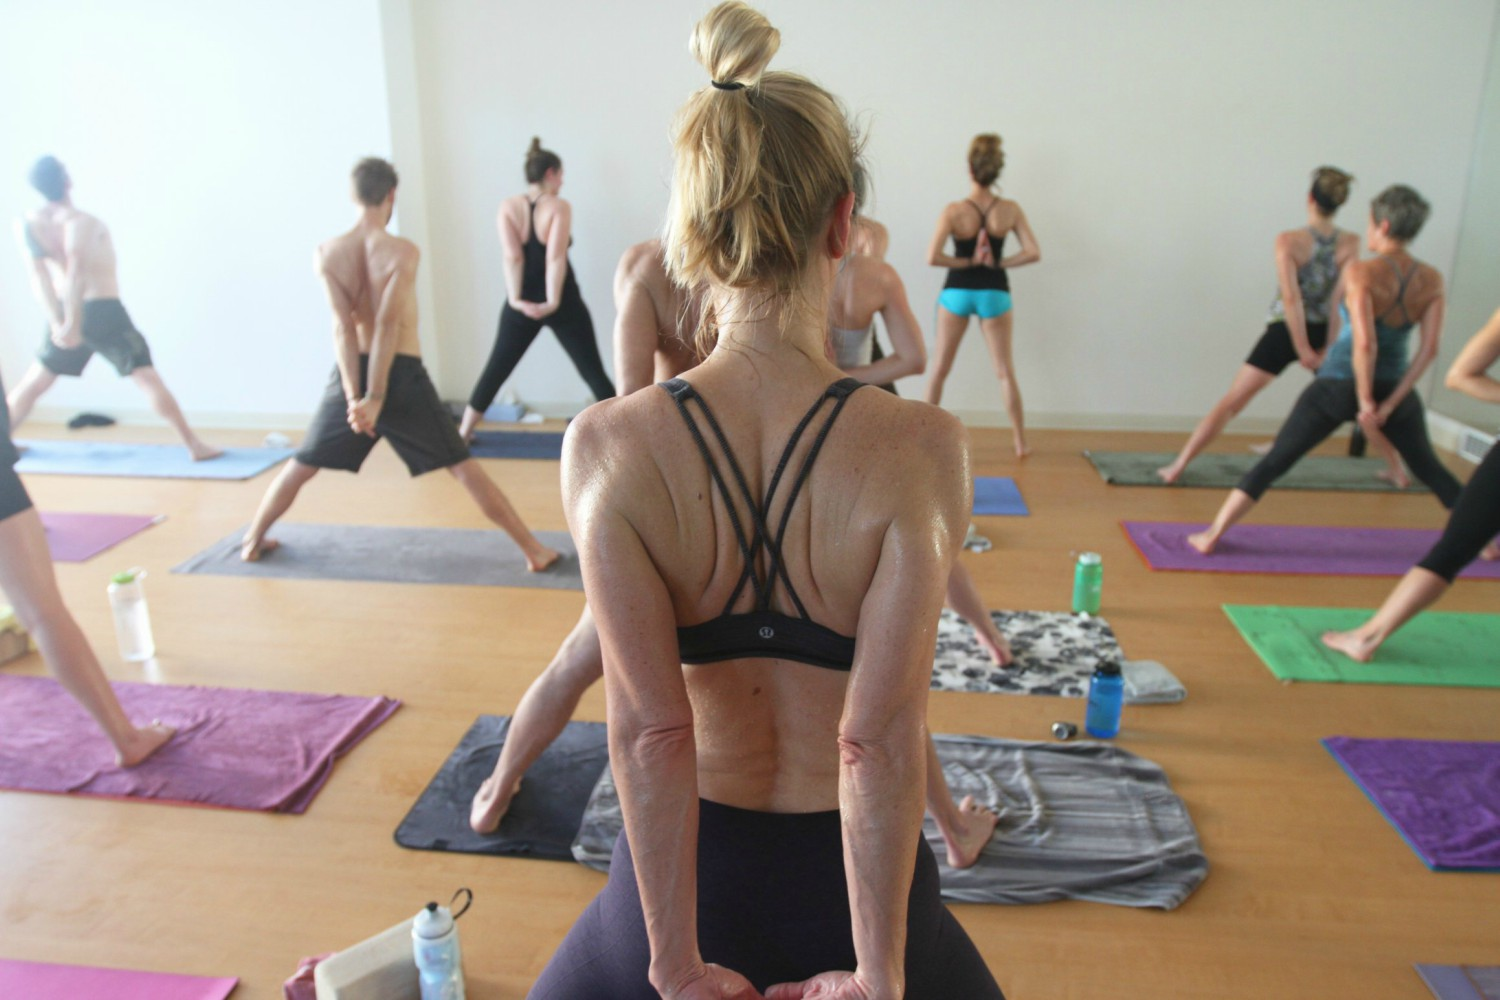 DETOX with epic hot yoga.